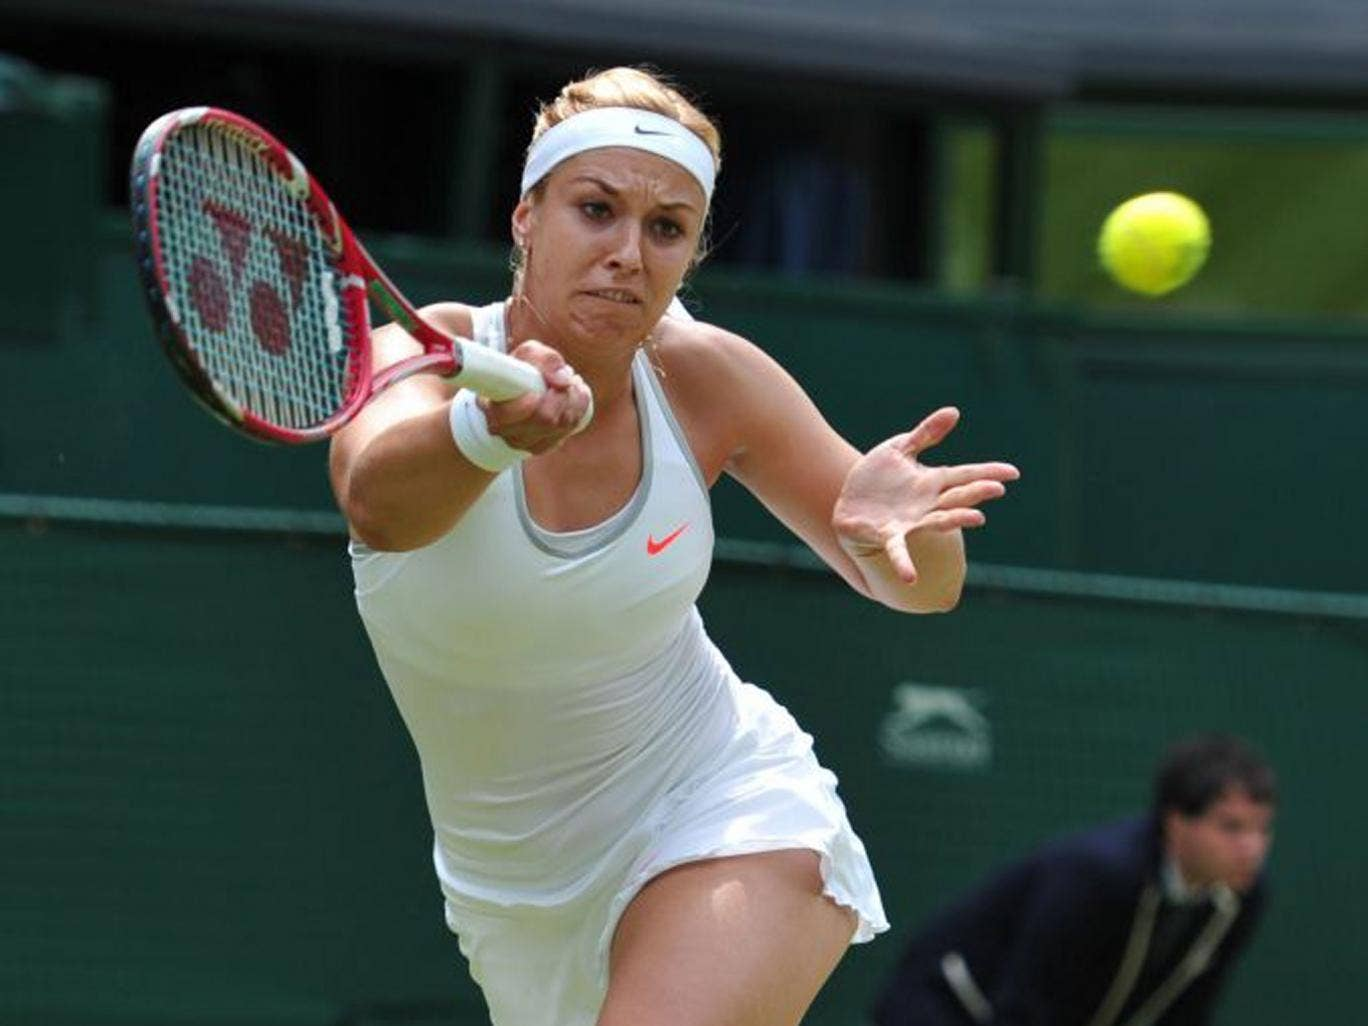 Sabine Lisicki's aggressive approach got the better of Serena Williams